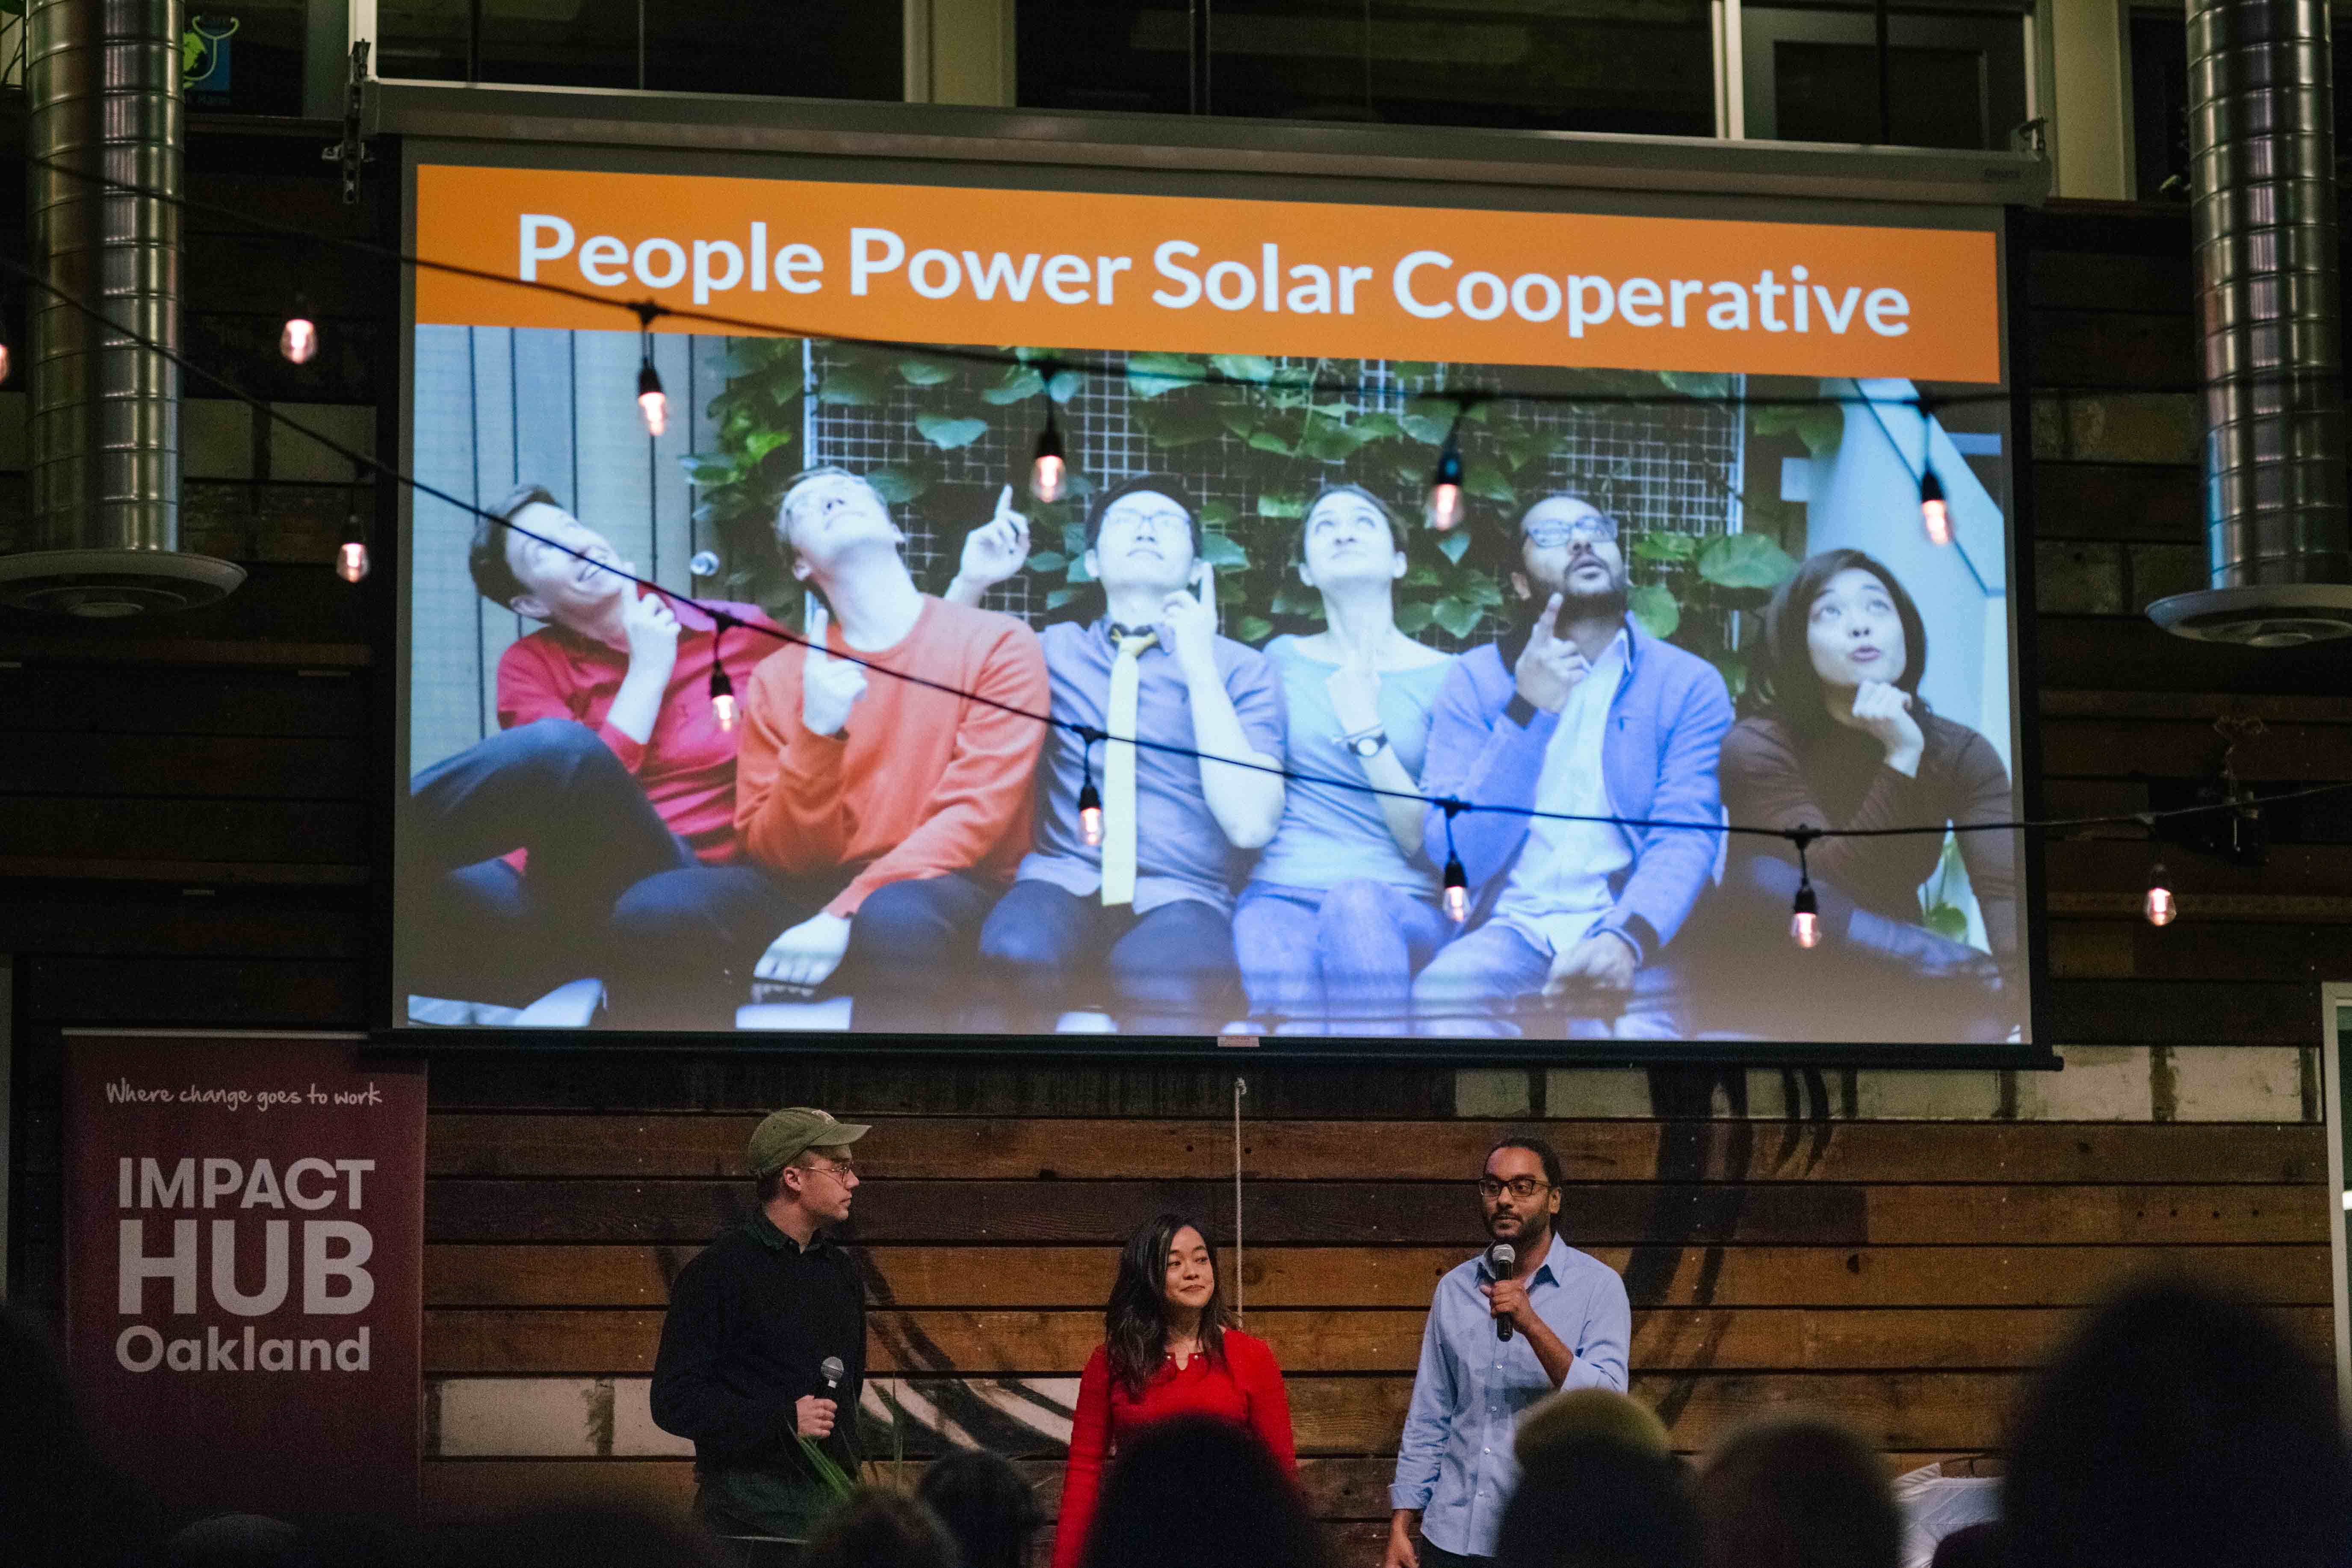 Member of People Power Solar (L-R: Grayson Curtis, Crystal Huang, Subin Devar) addressing the crowd.